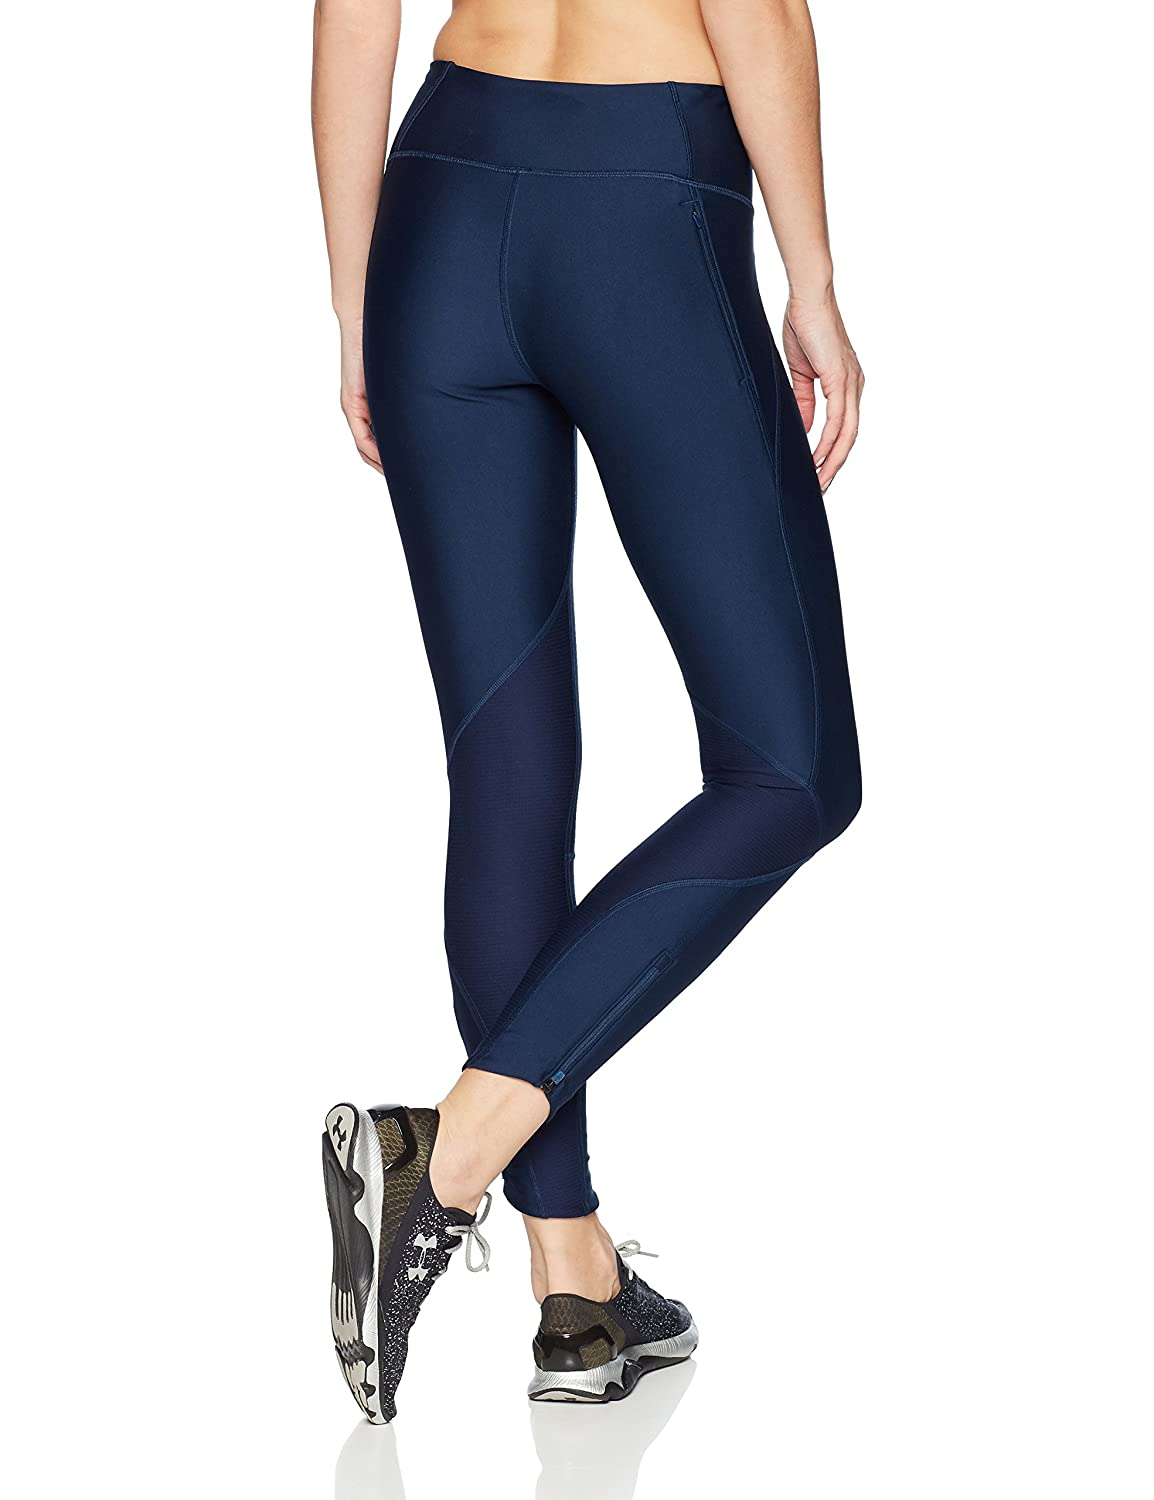 527a7522d1484 Amazon.com: Under Armour Women's Armour Fly Fast Tights: Clothing